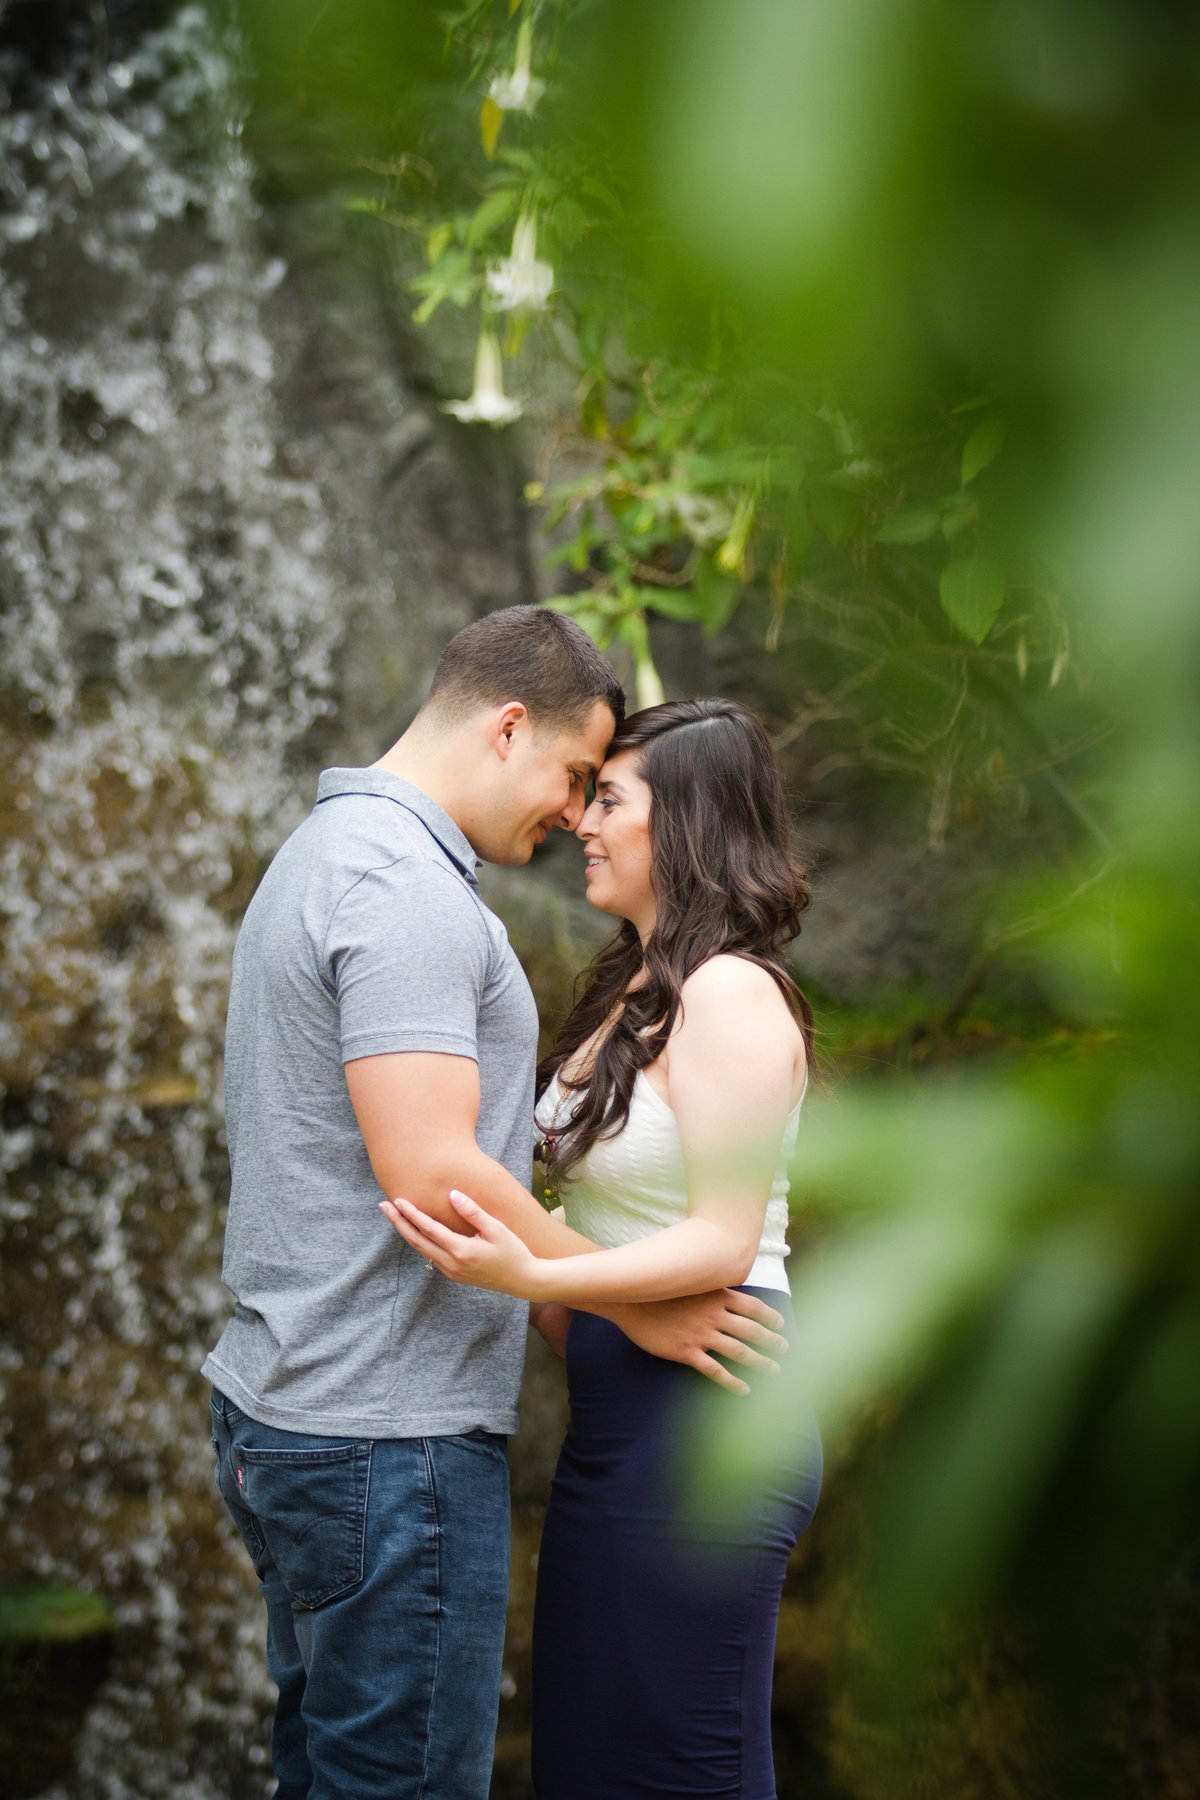 022-Carlin Engagement Session